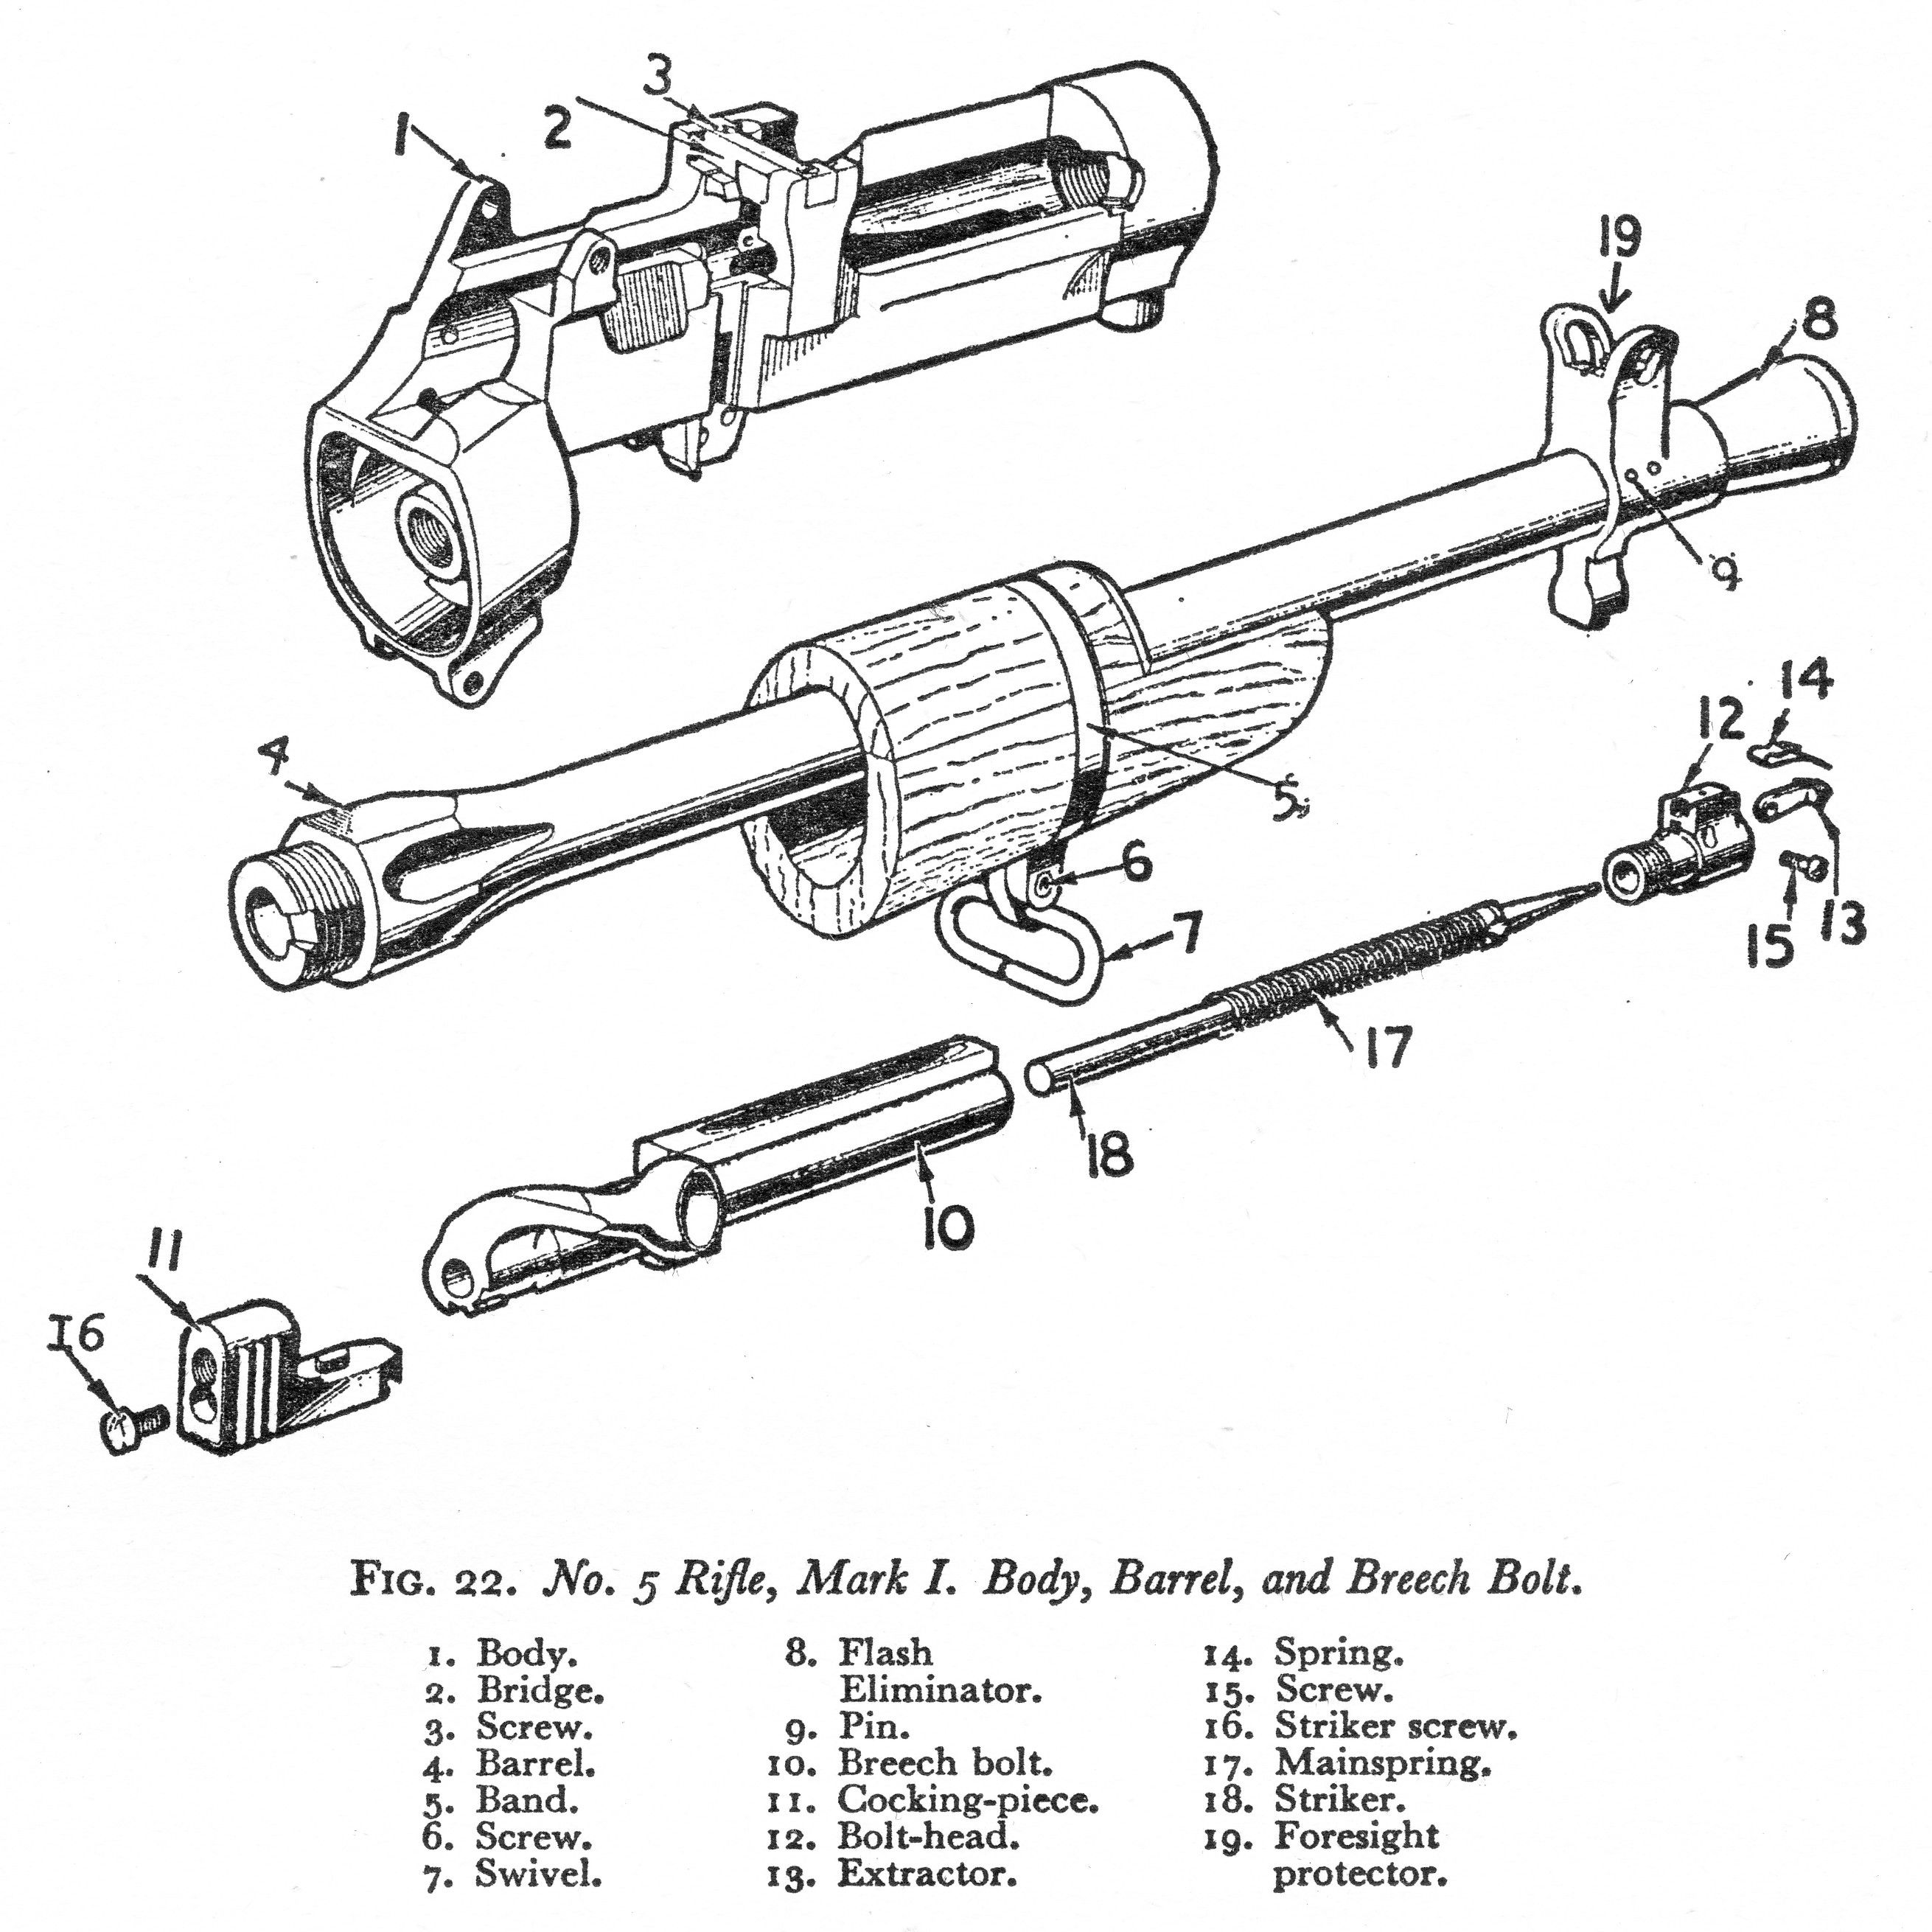 Line drawing of No.5 MkI rifle receiver, bolt and barrel